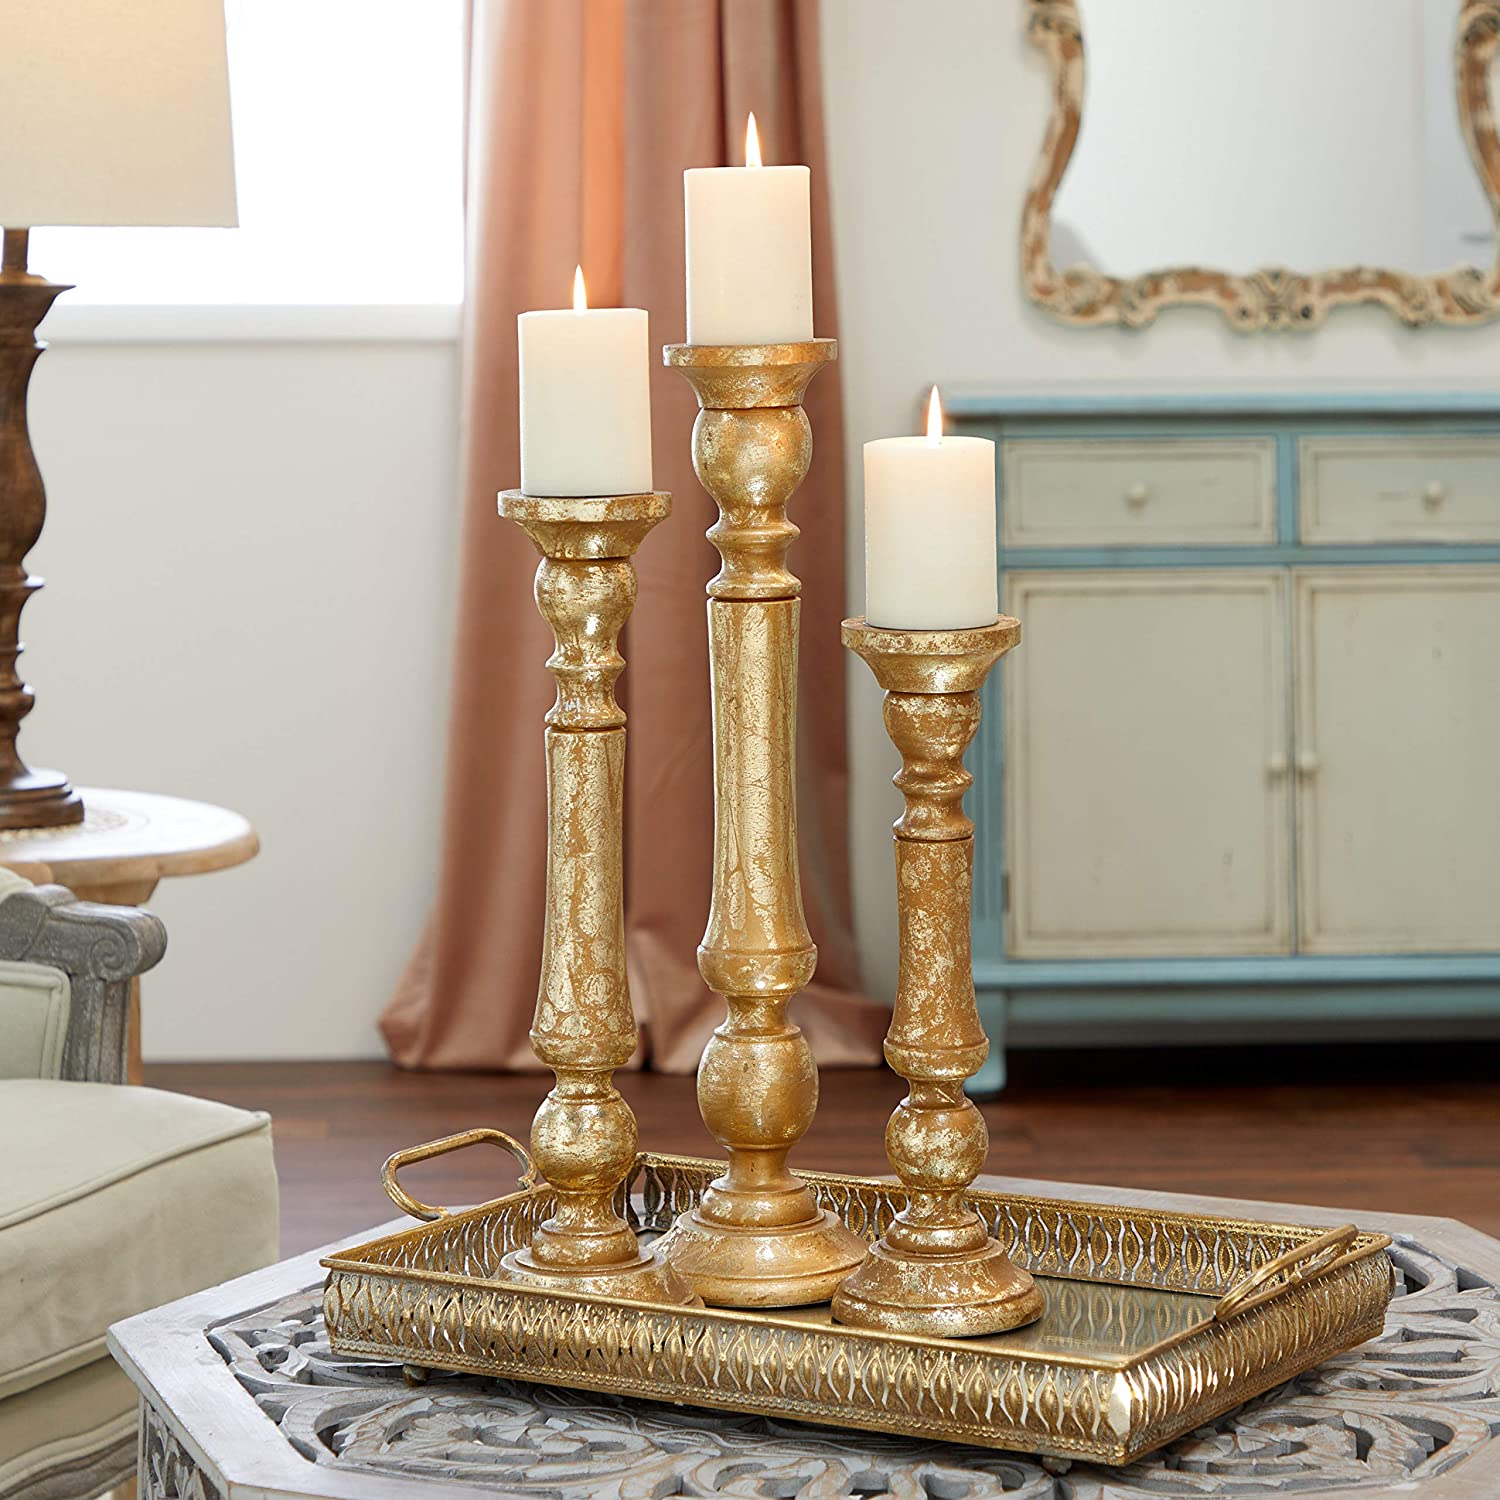 ► Candlesticks Candle Holder Candle Villeroy /& Boch Gold Large 23cm Gift NEW